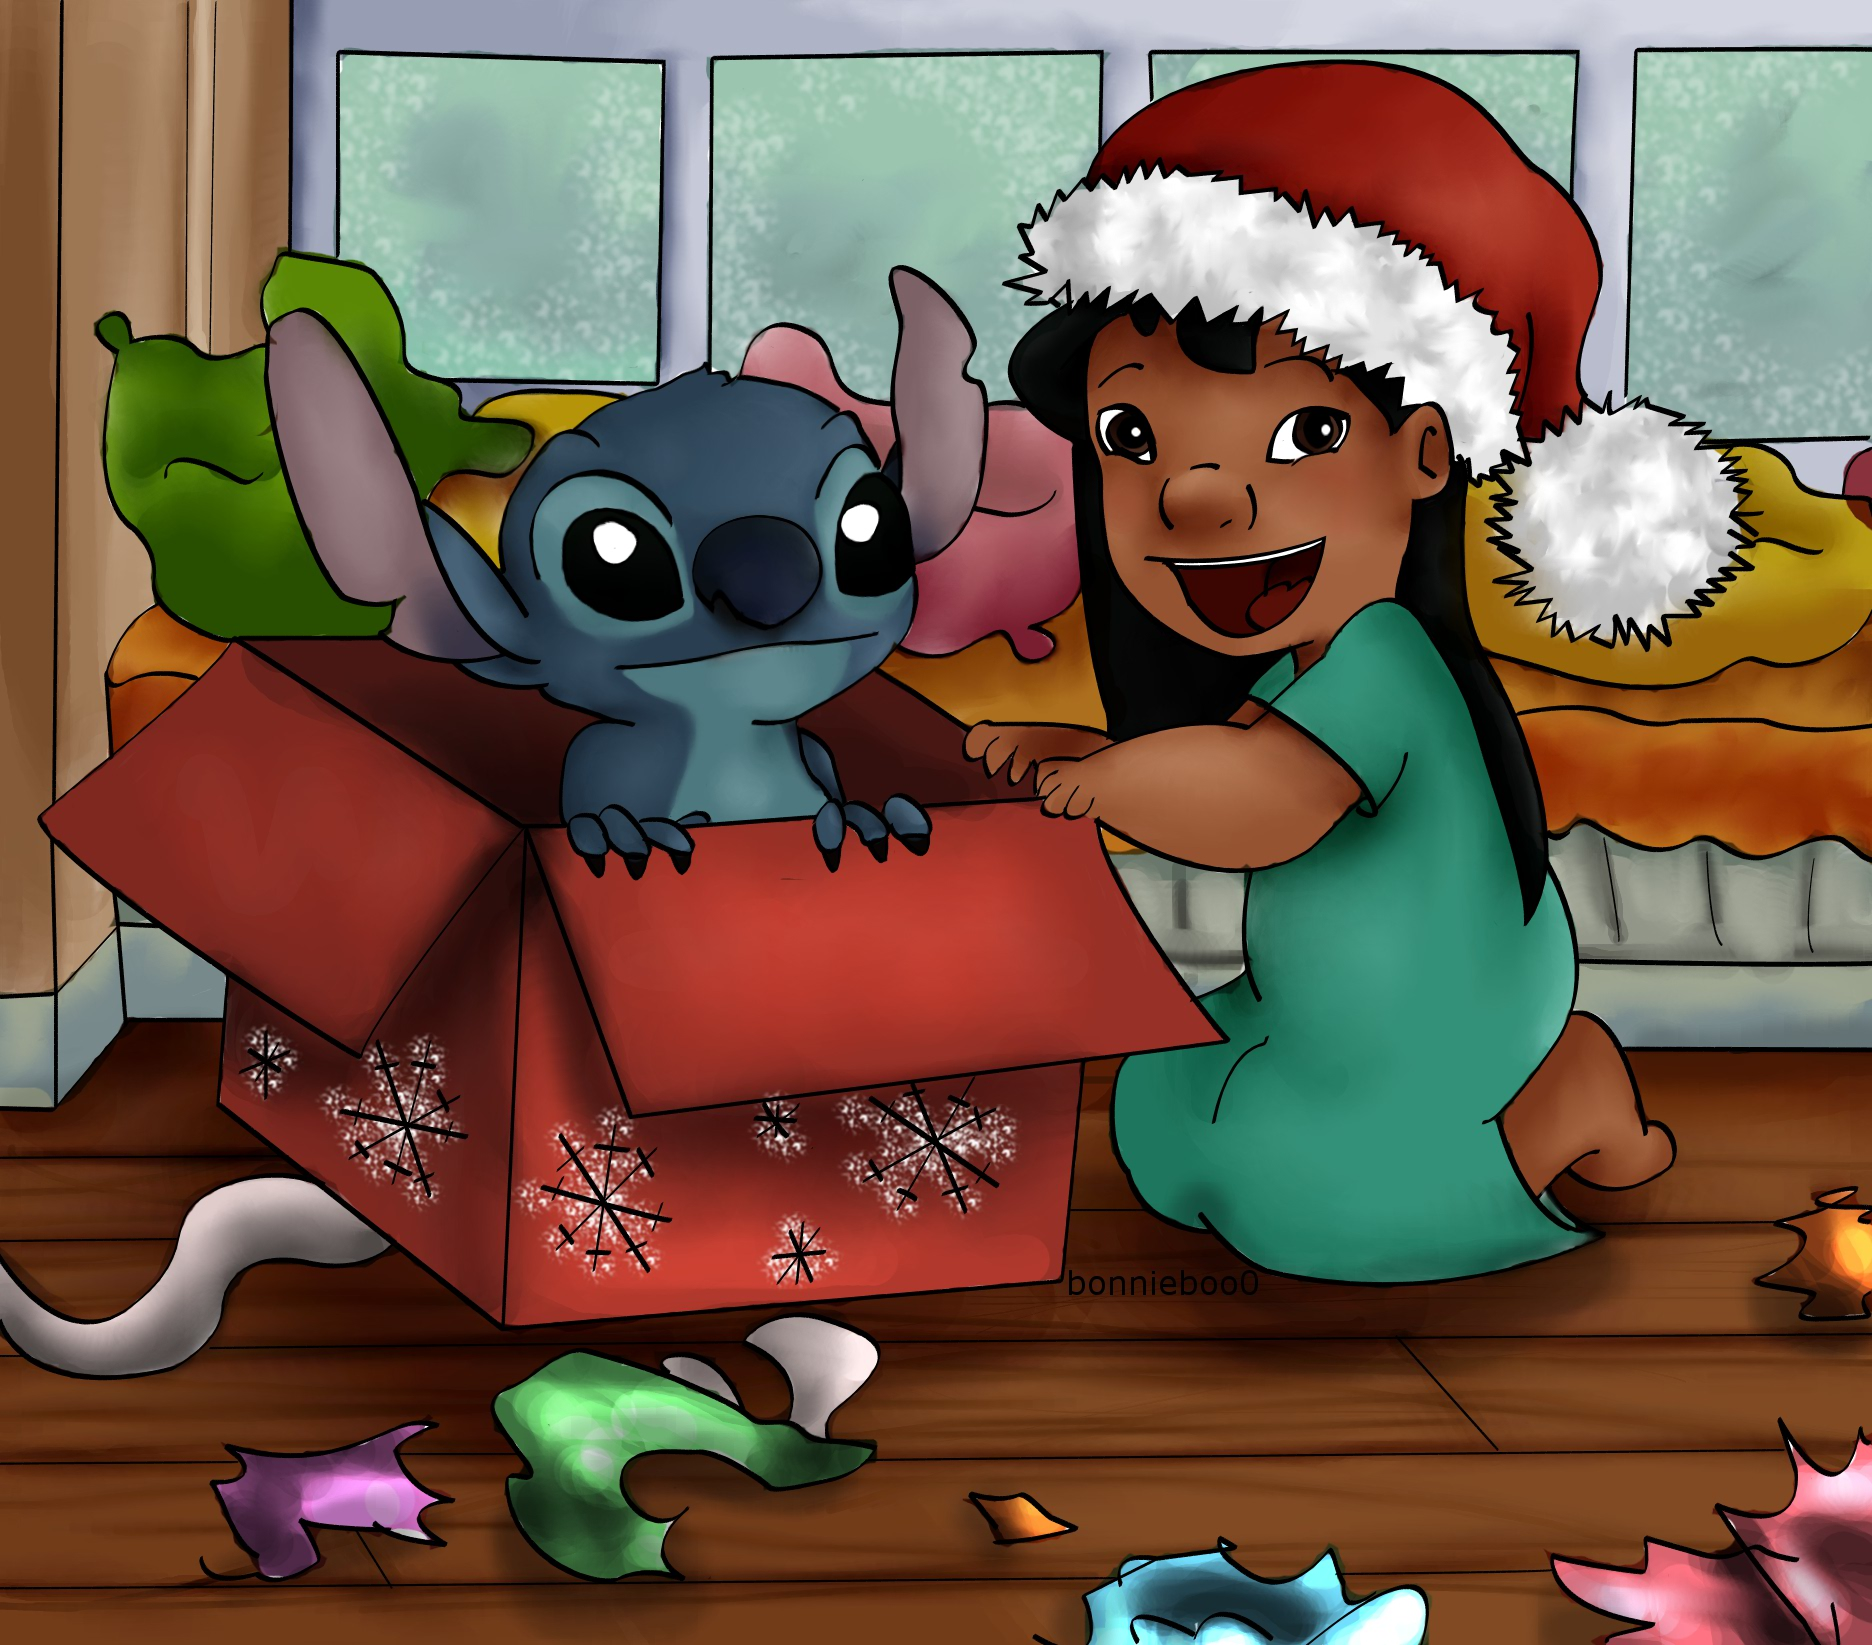 Merry Christmas From Lilo And Stitch By Bonnieboo0 On